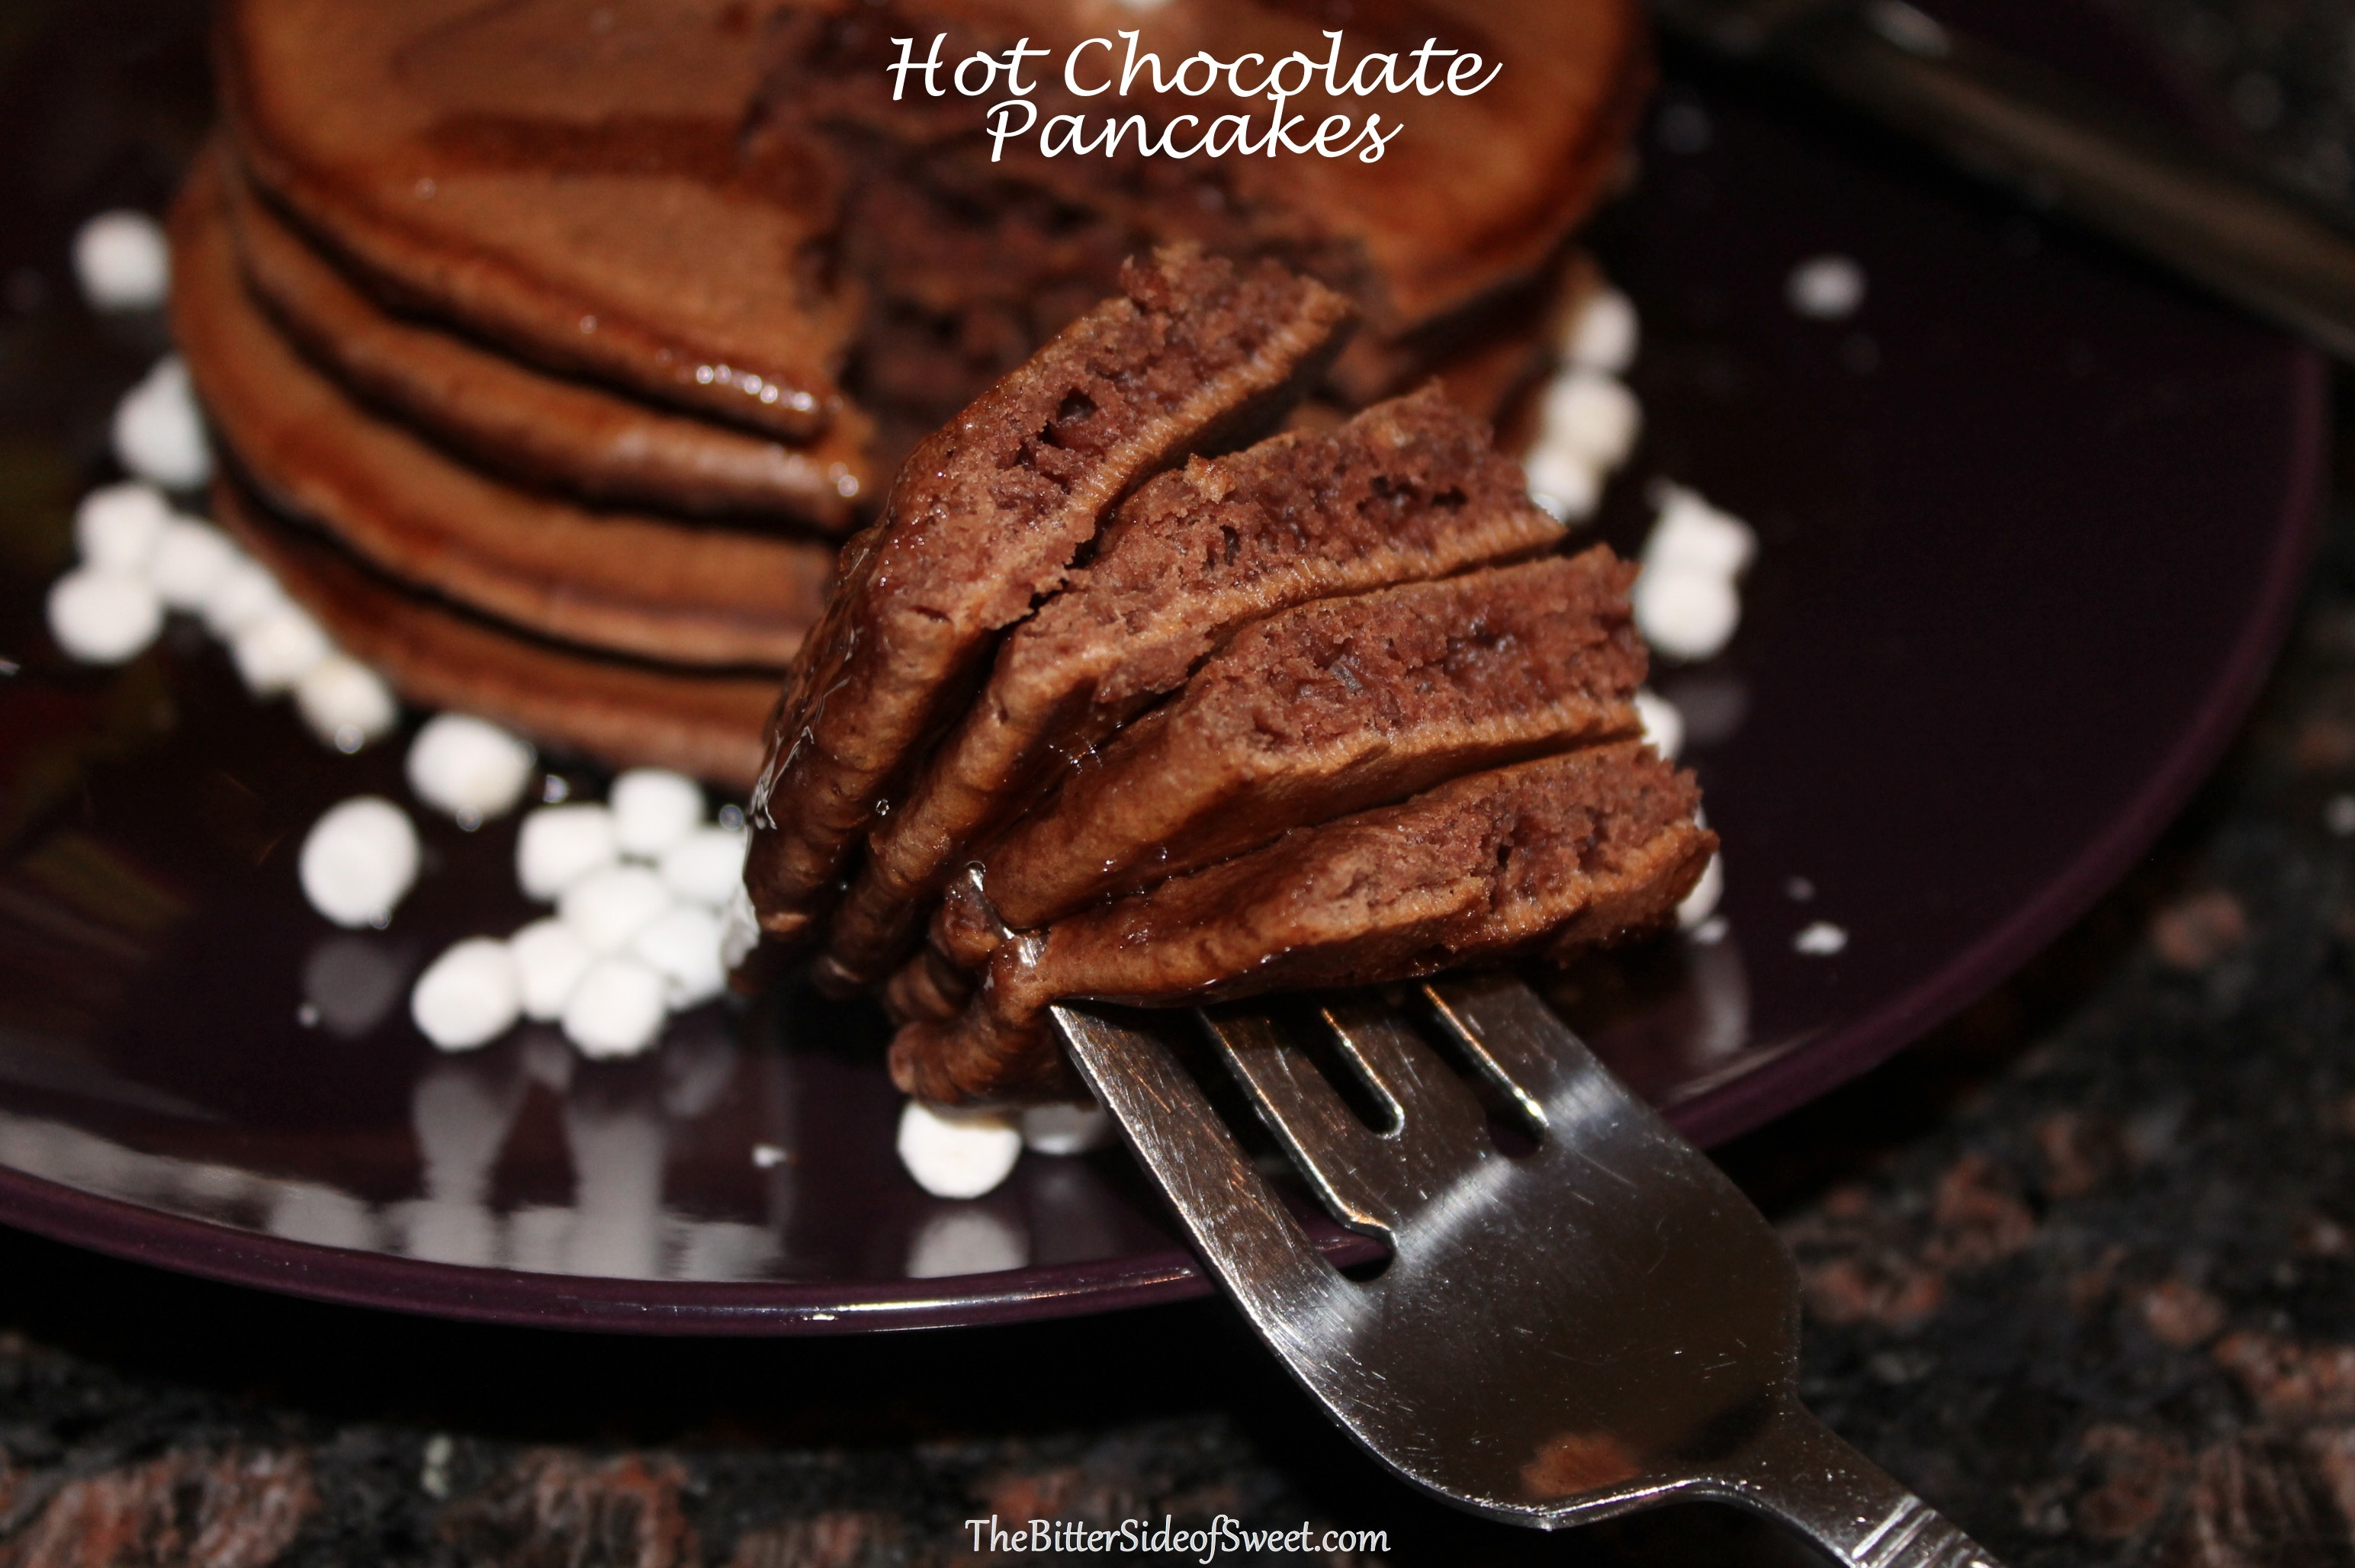 Watch How to Make Hot Chocolate Pancakes video